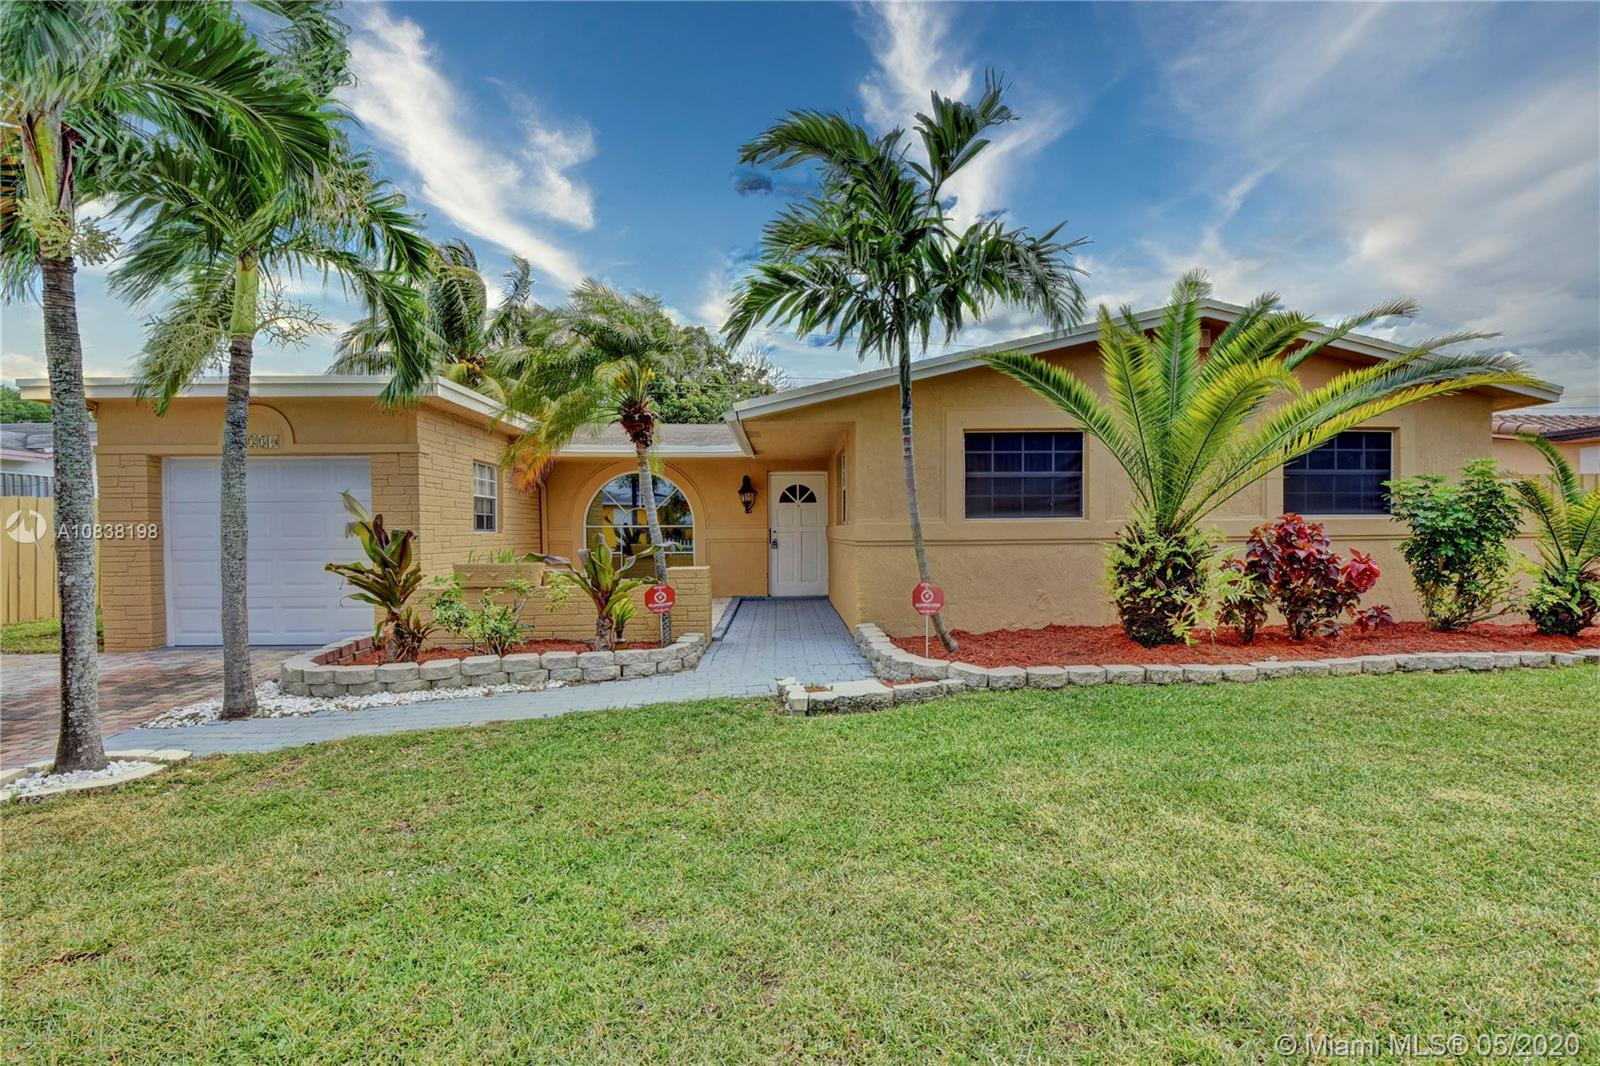 This updated, Spacious Move-in ready, turn key 3 bedroom 2 bathroom Pool Home in Lauderhill is located in a quiet community of Holiday Village. As you walk into this gorgeous turn-key single family home with a split-floor plan, you'll see beautiful stone accent wall to your left, new Flooring, gorgeous Kitchen with updated cabinets and Granite counter tops, New Stainless Steel Appliances & New washer & dryer, French doors, private contemporary style bar, newly painted interior & exterior, with lots of natural light. Both bathrooms have new vanities and New A/C. Home has Impact Garage Door. Huge landscaped backyard features include: Coconut Tree, Tall Palm Trees that provide shade around the pool + fenced yard. No HOA!! No Pet Restrictions!